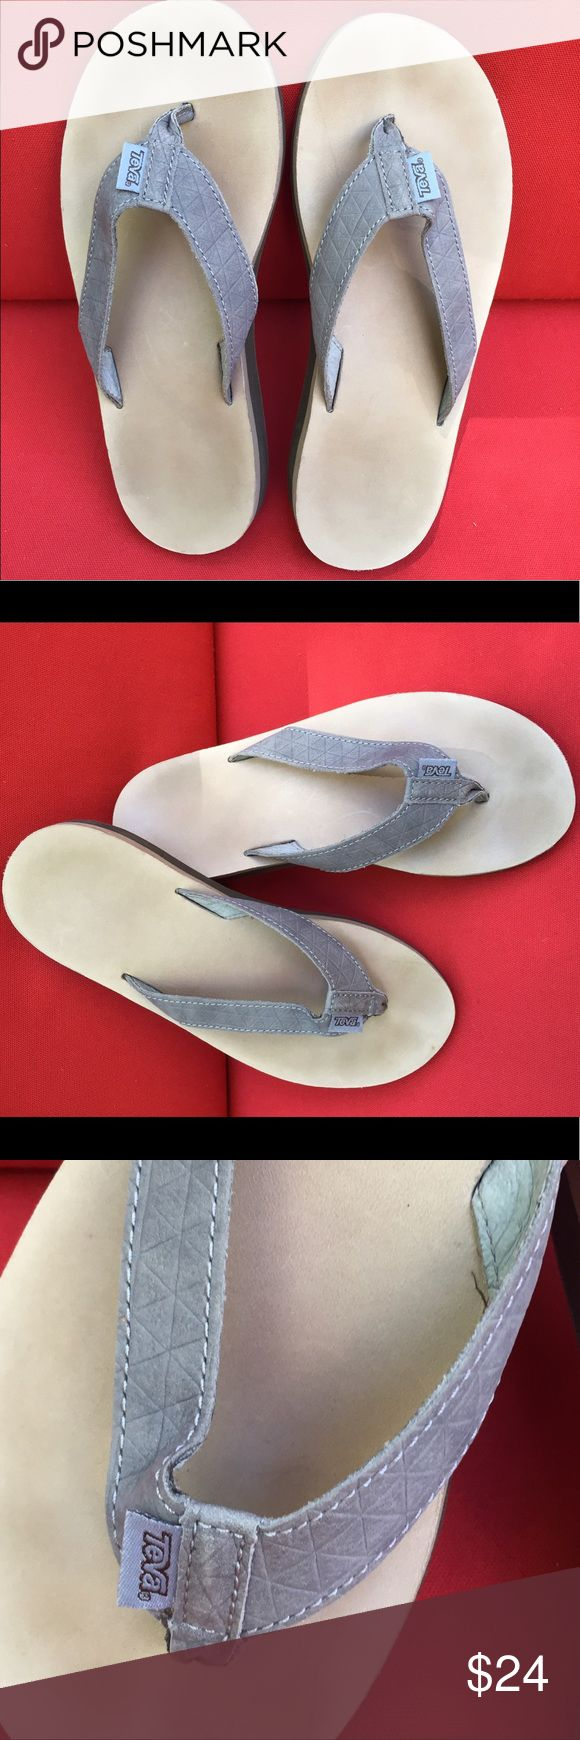 Leather Teva Flip Flop Sandals VGUC Teva flip flops. Gray straps with diamond embossing, tan leather sole in size 8. Too loose on my narrow feet so only worn twice. Despite minimal wear the tan bottoms do have toe markings. Great condition otherwise! Teva Shoes Sandals